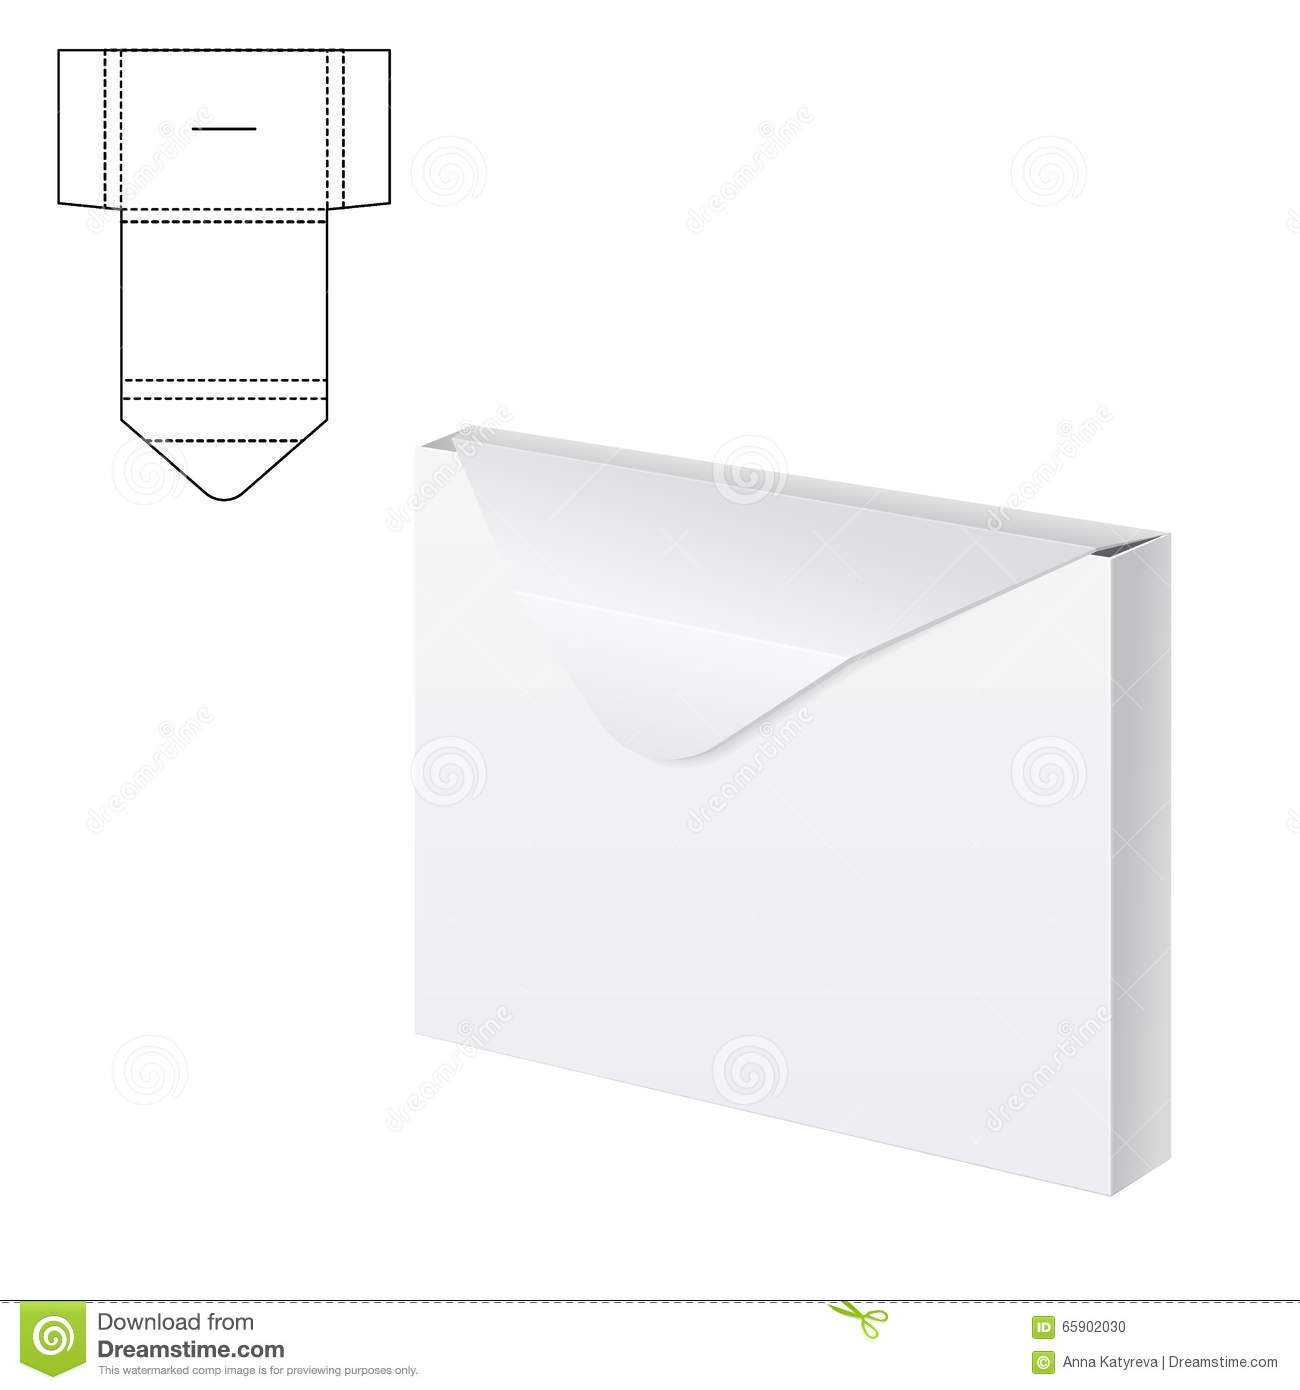 Envelope paper or craft box a stock vector illustration of envelope paper or craft box a jeuxipadfo Gallery